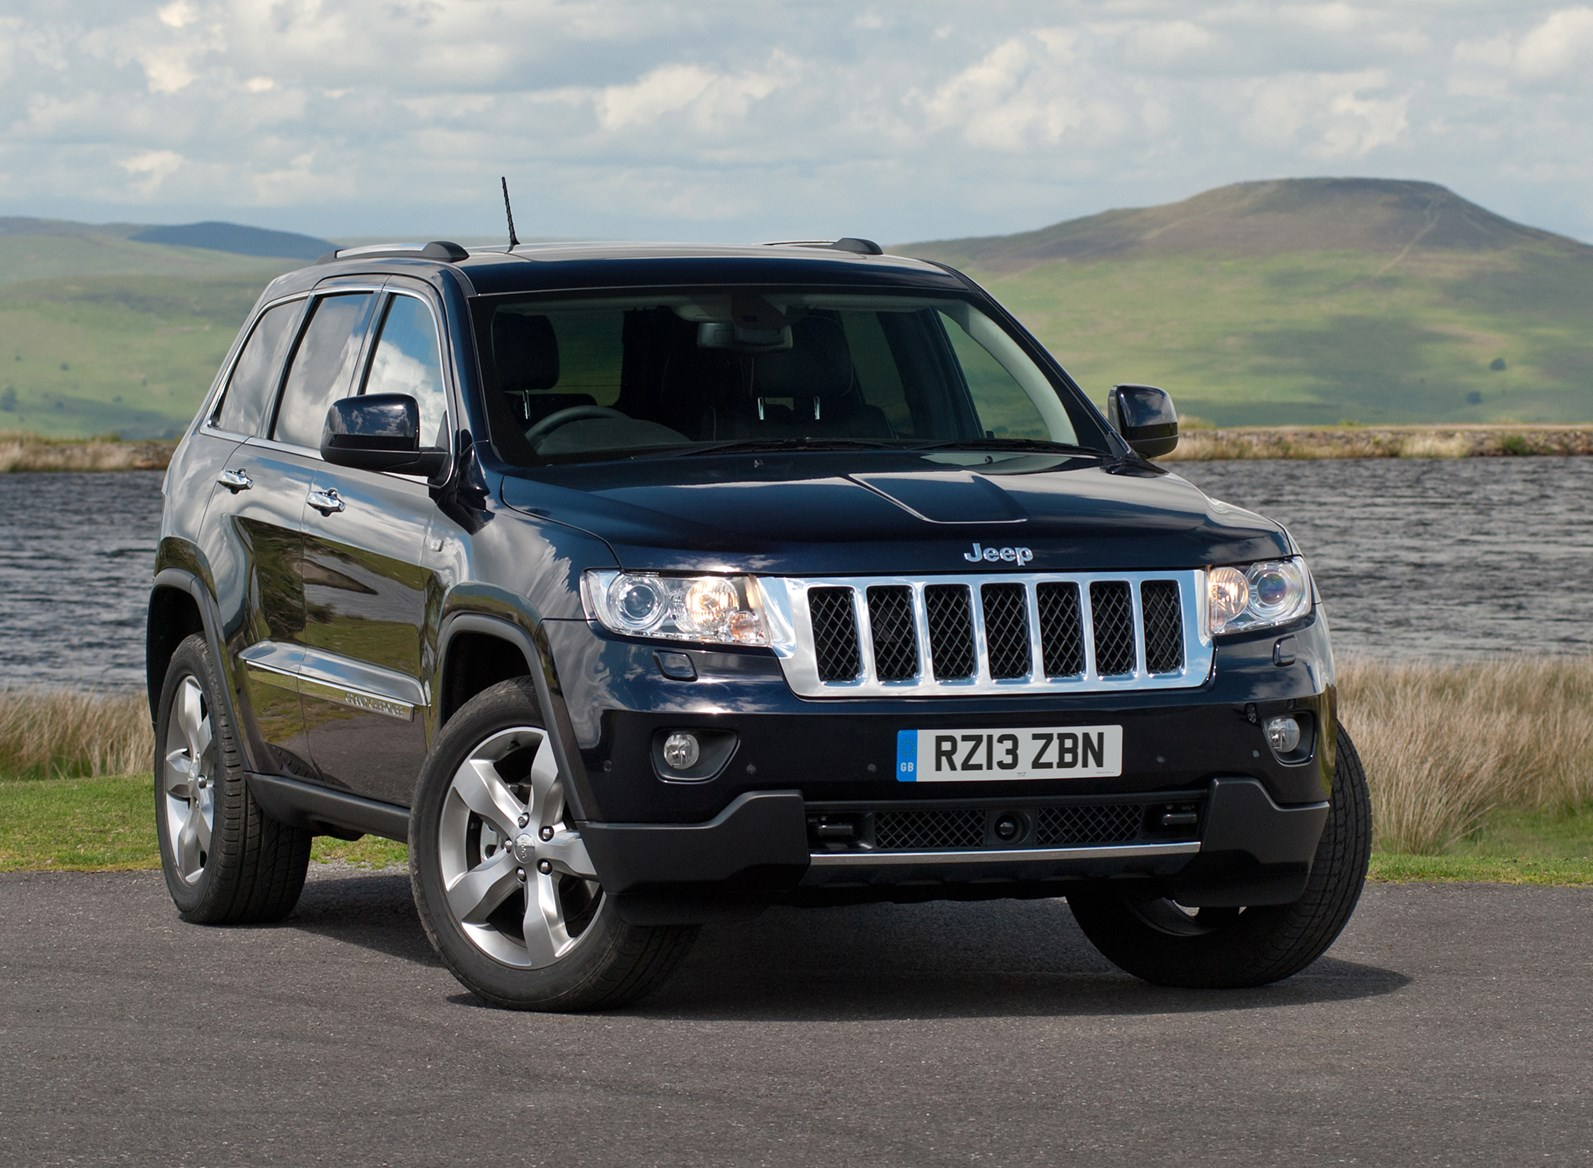 jeep grand cherokee estate review 2011 parkers. Black Bedroom Furniture Sets. Home Design Ideas